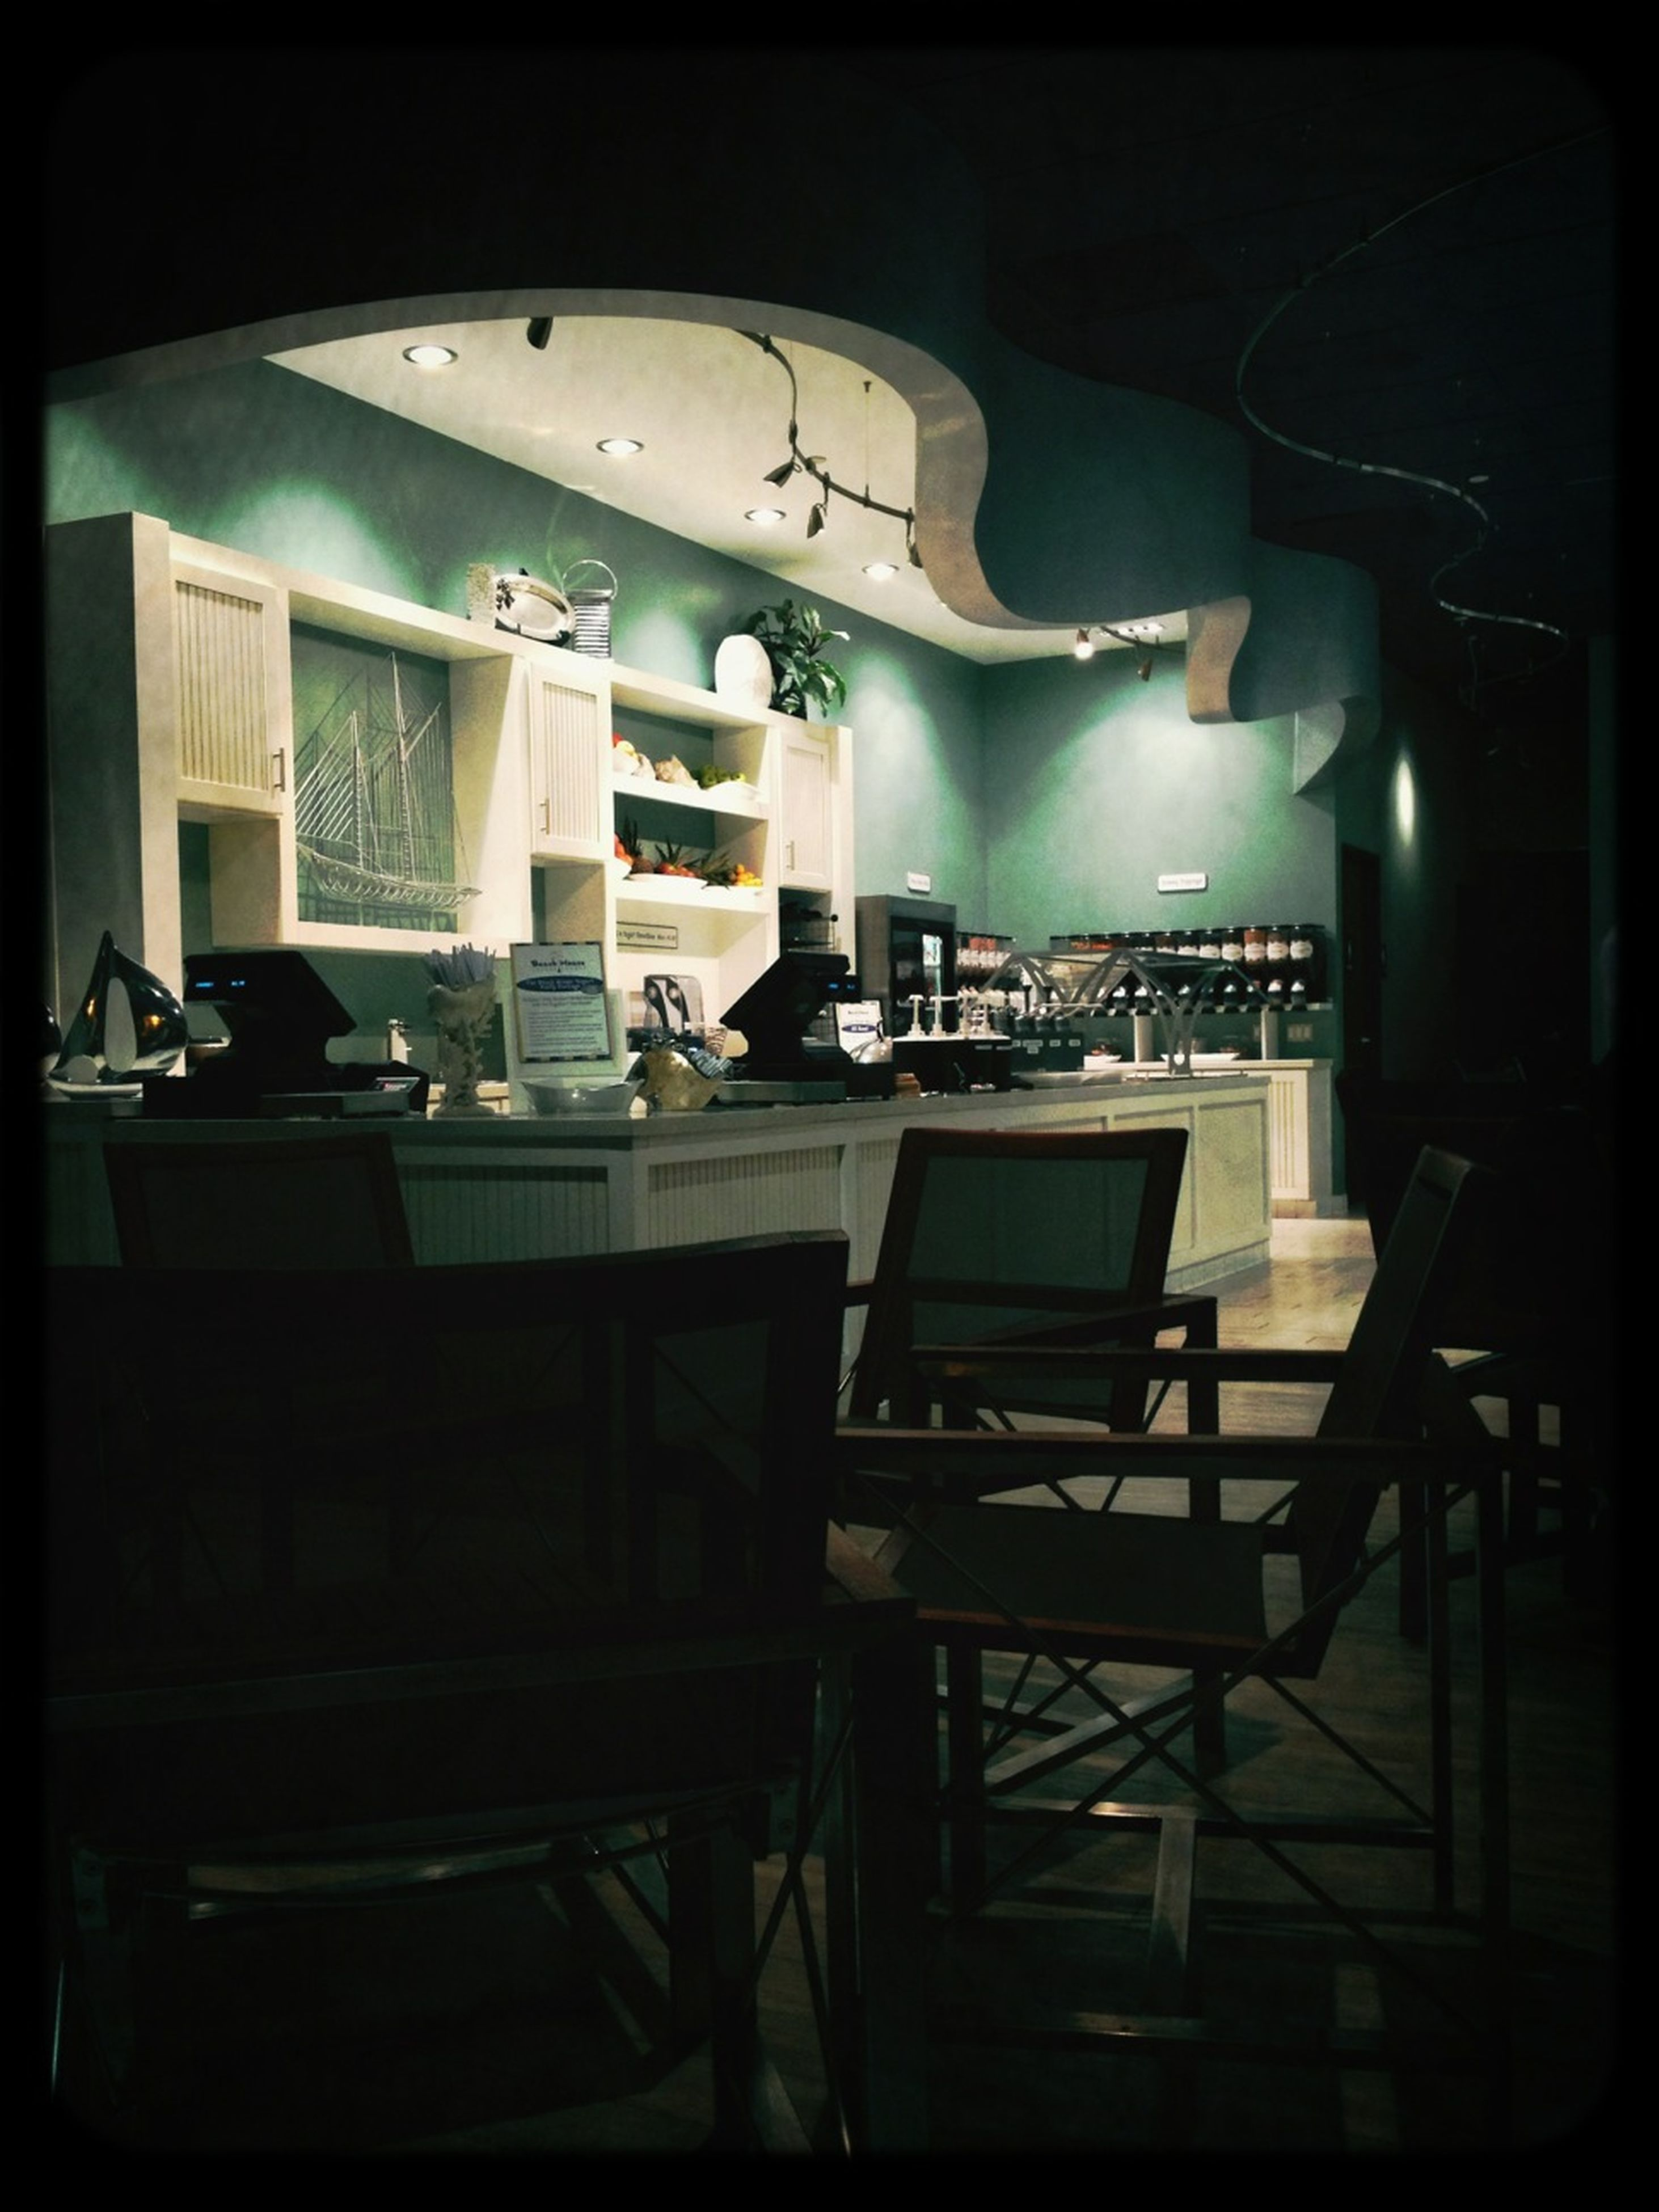 indoors, transfer print, chair, auto post production filter, illuminated, table, absence, empty, restaurant, window, lighting equipment, home interior, interior, seat, room, shelf, no people, glass - material, night, arrangement